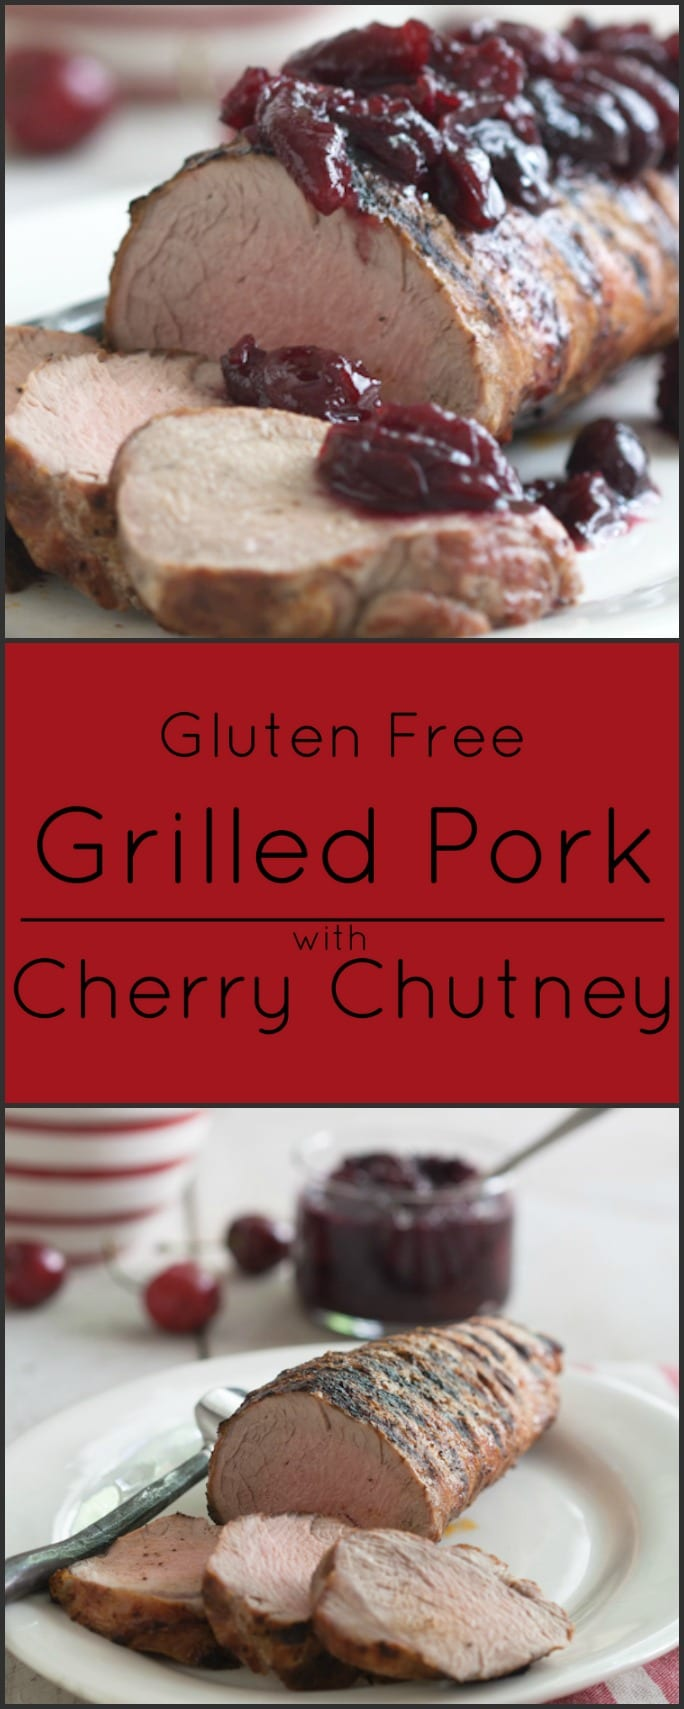 Grilled Pork Loin with Cherry Chutney. Perfect for grilling season. Gluten free!